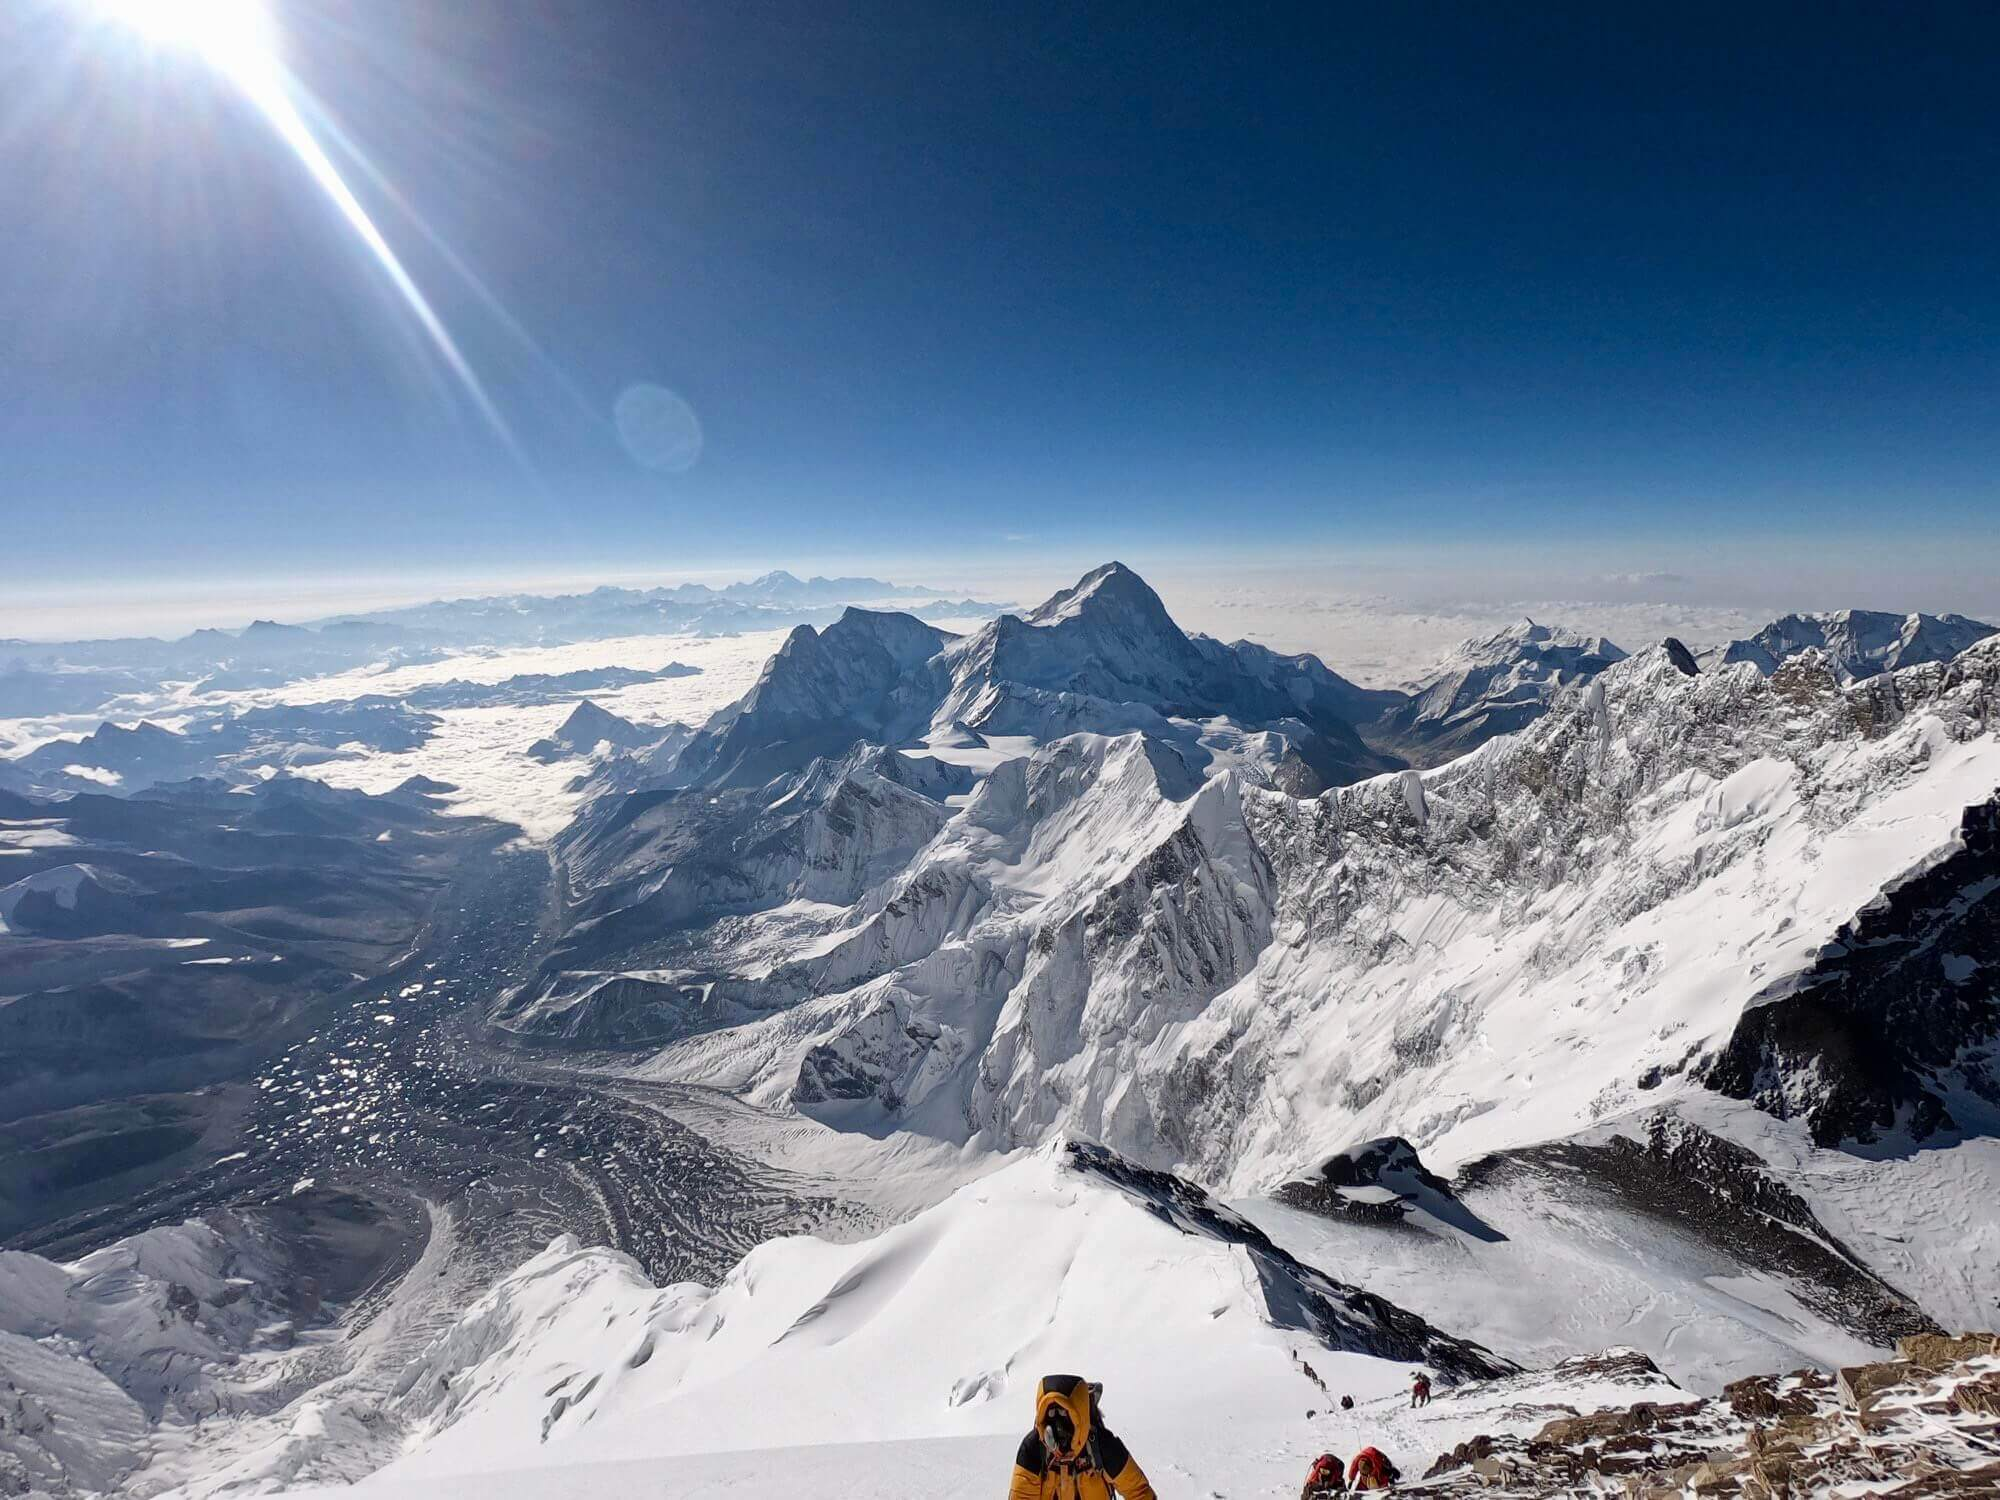 Nepali Times | Most days, it's not so crowded on Mt Everest